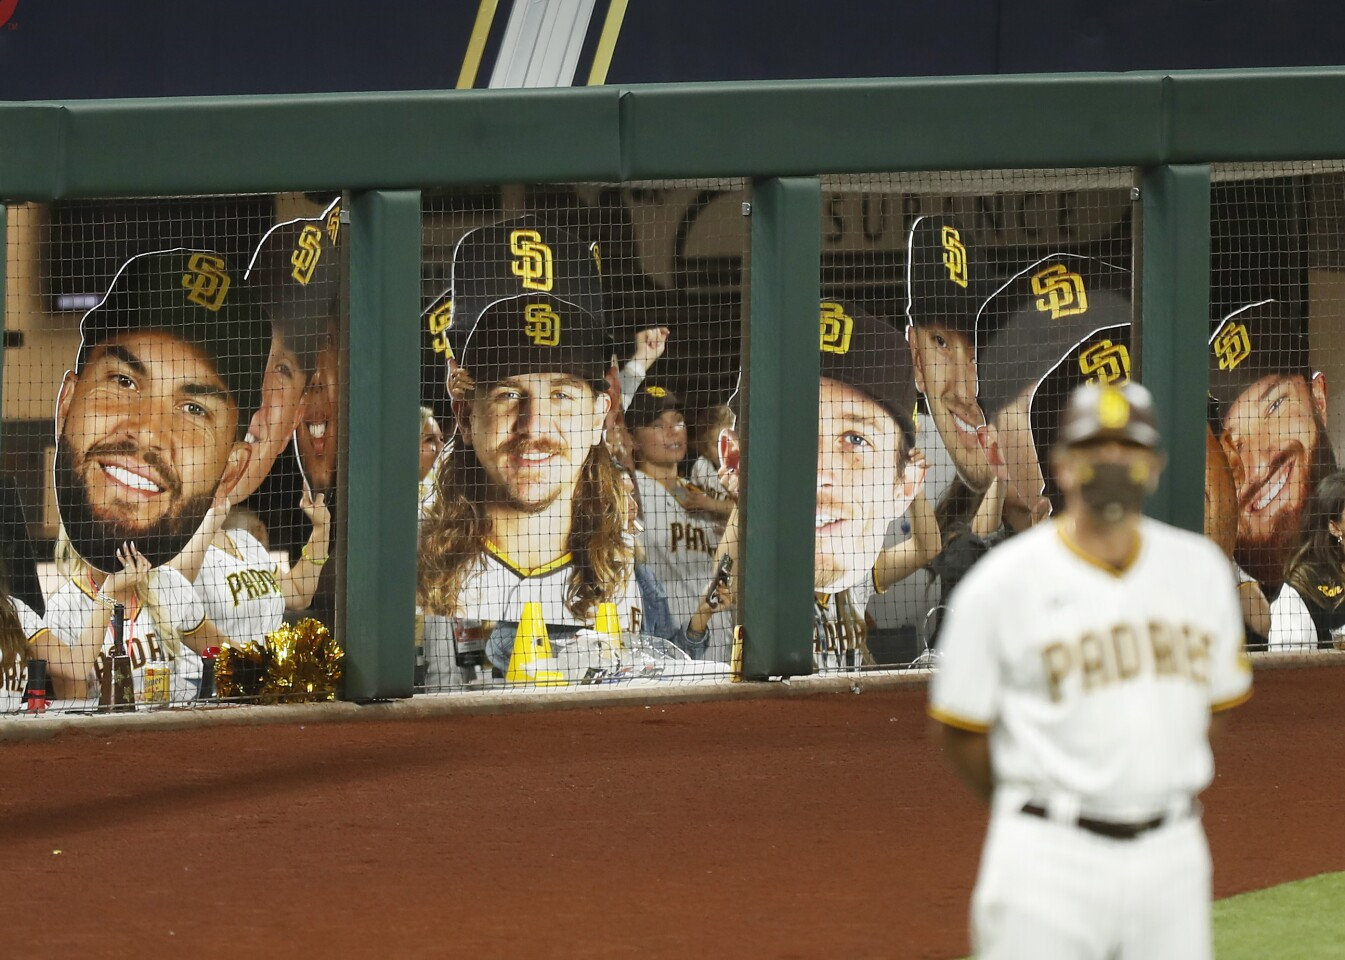 Wives, girlfriends, and family of the San Diego Padres hold up